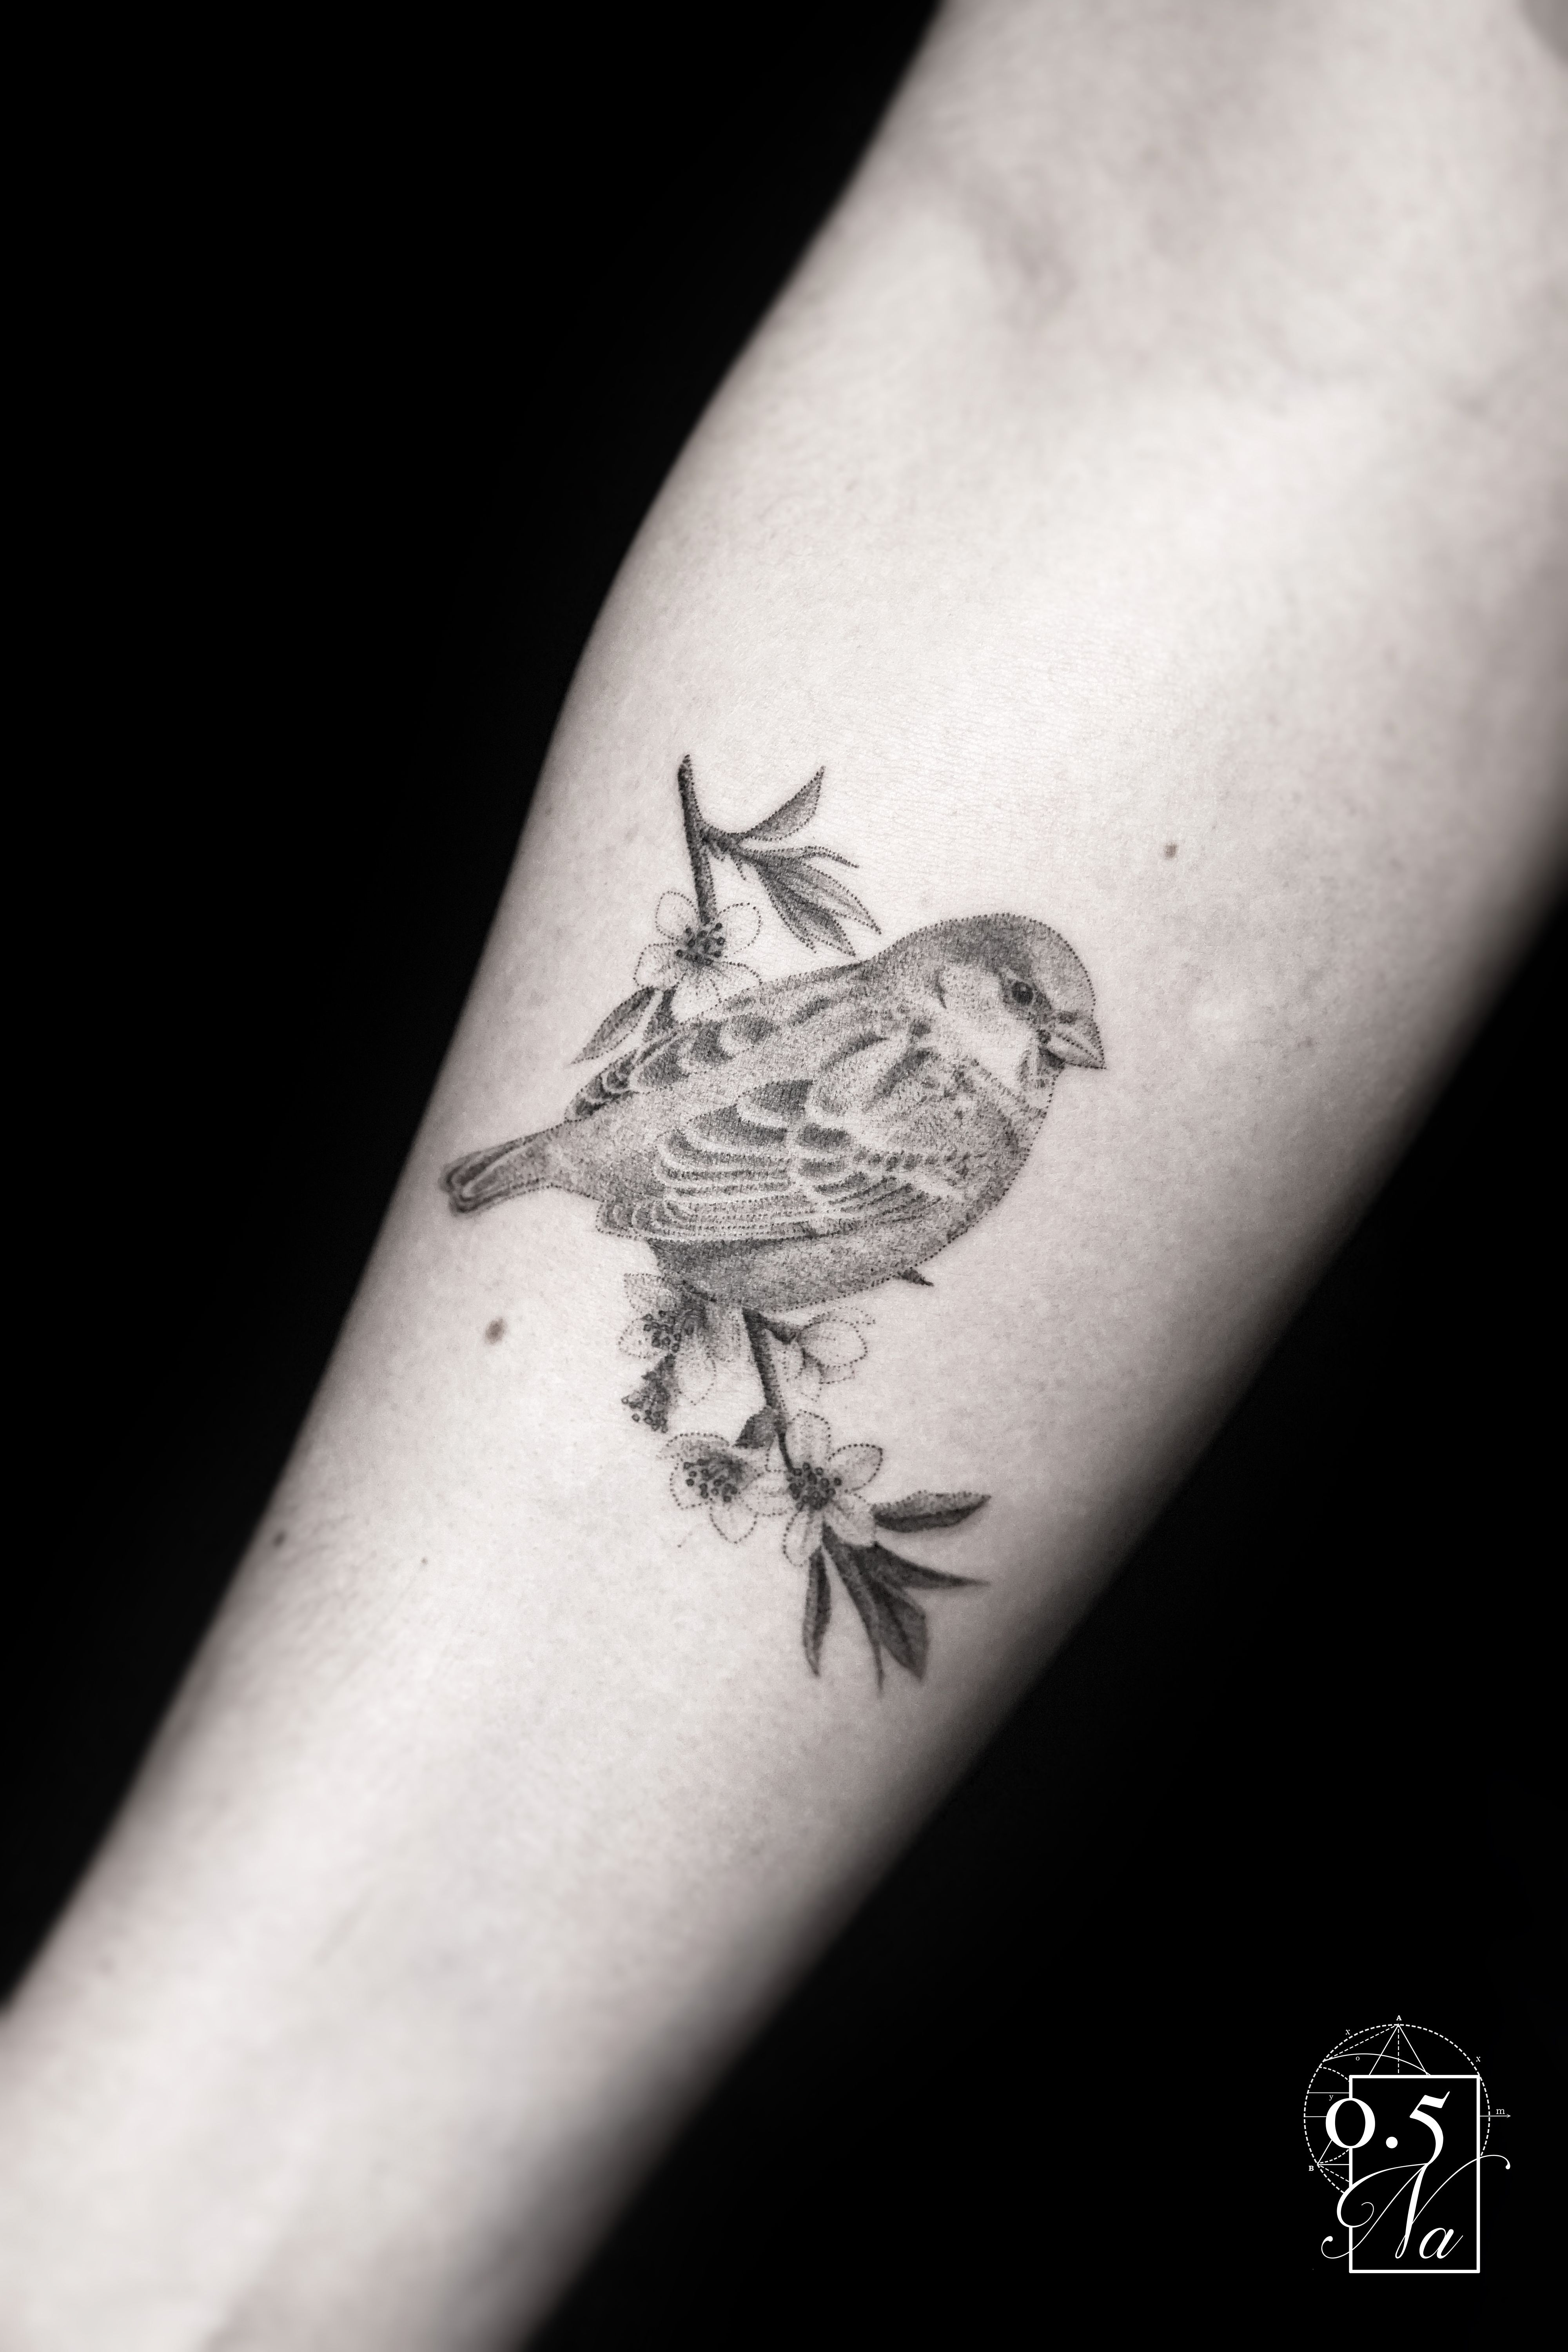 Pin By Keely Dusty Fox On Tattoos With Images Realistic Bird Tattoo Robin Bird Tattoos Sparrow Tattoo